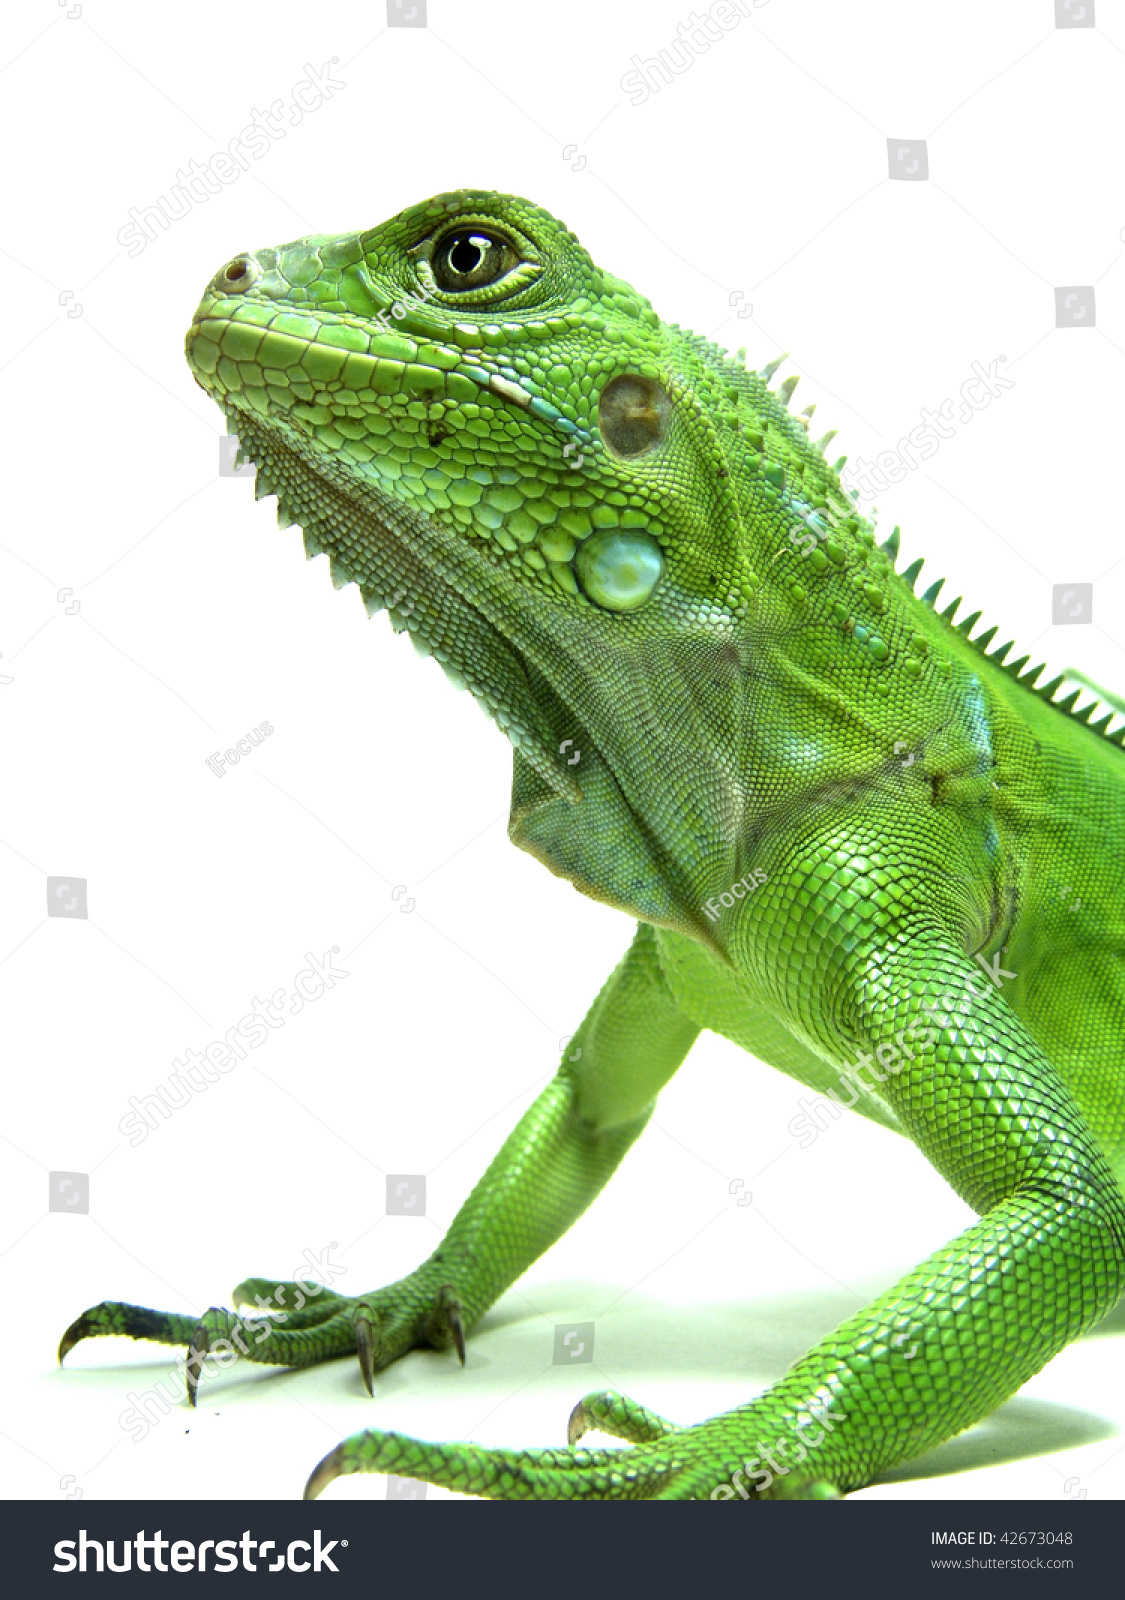 Isolated photo of a Green iguana